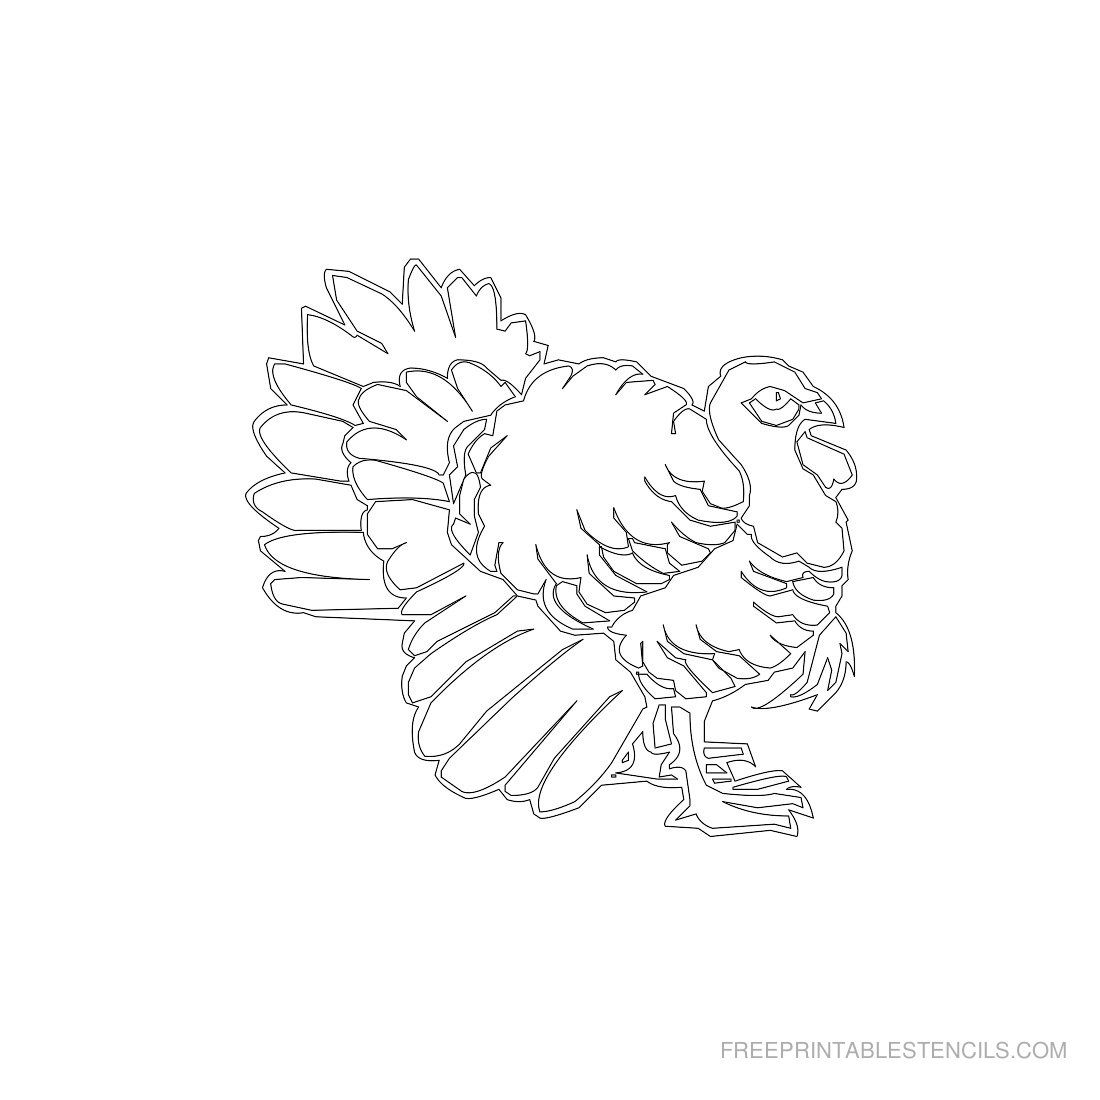 Rooster Stencils Printable